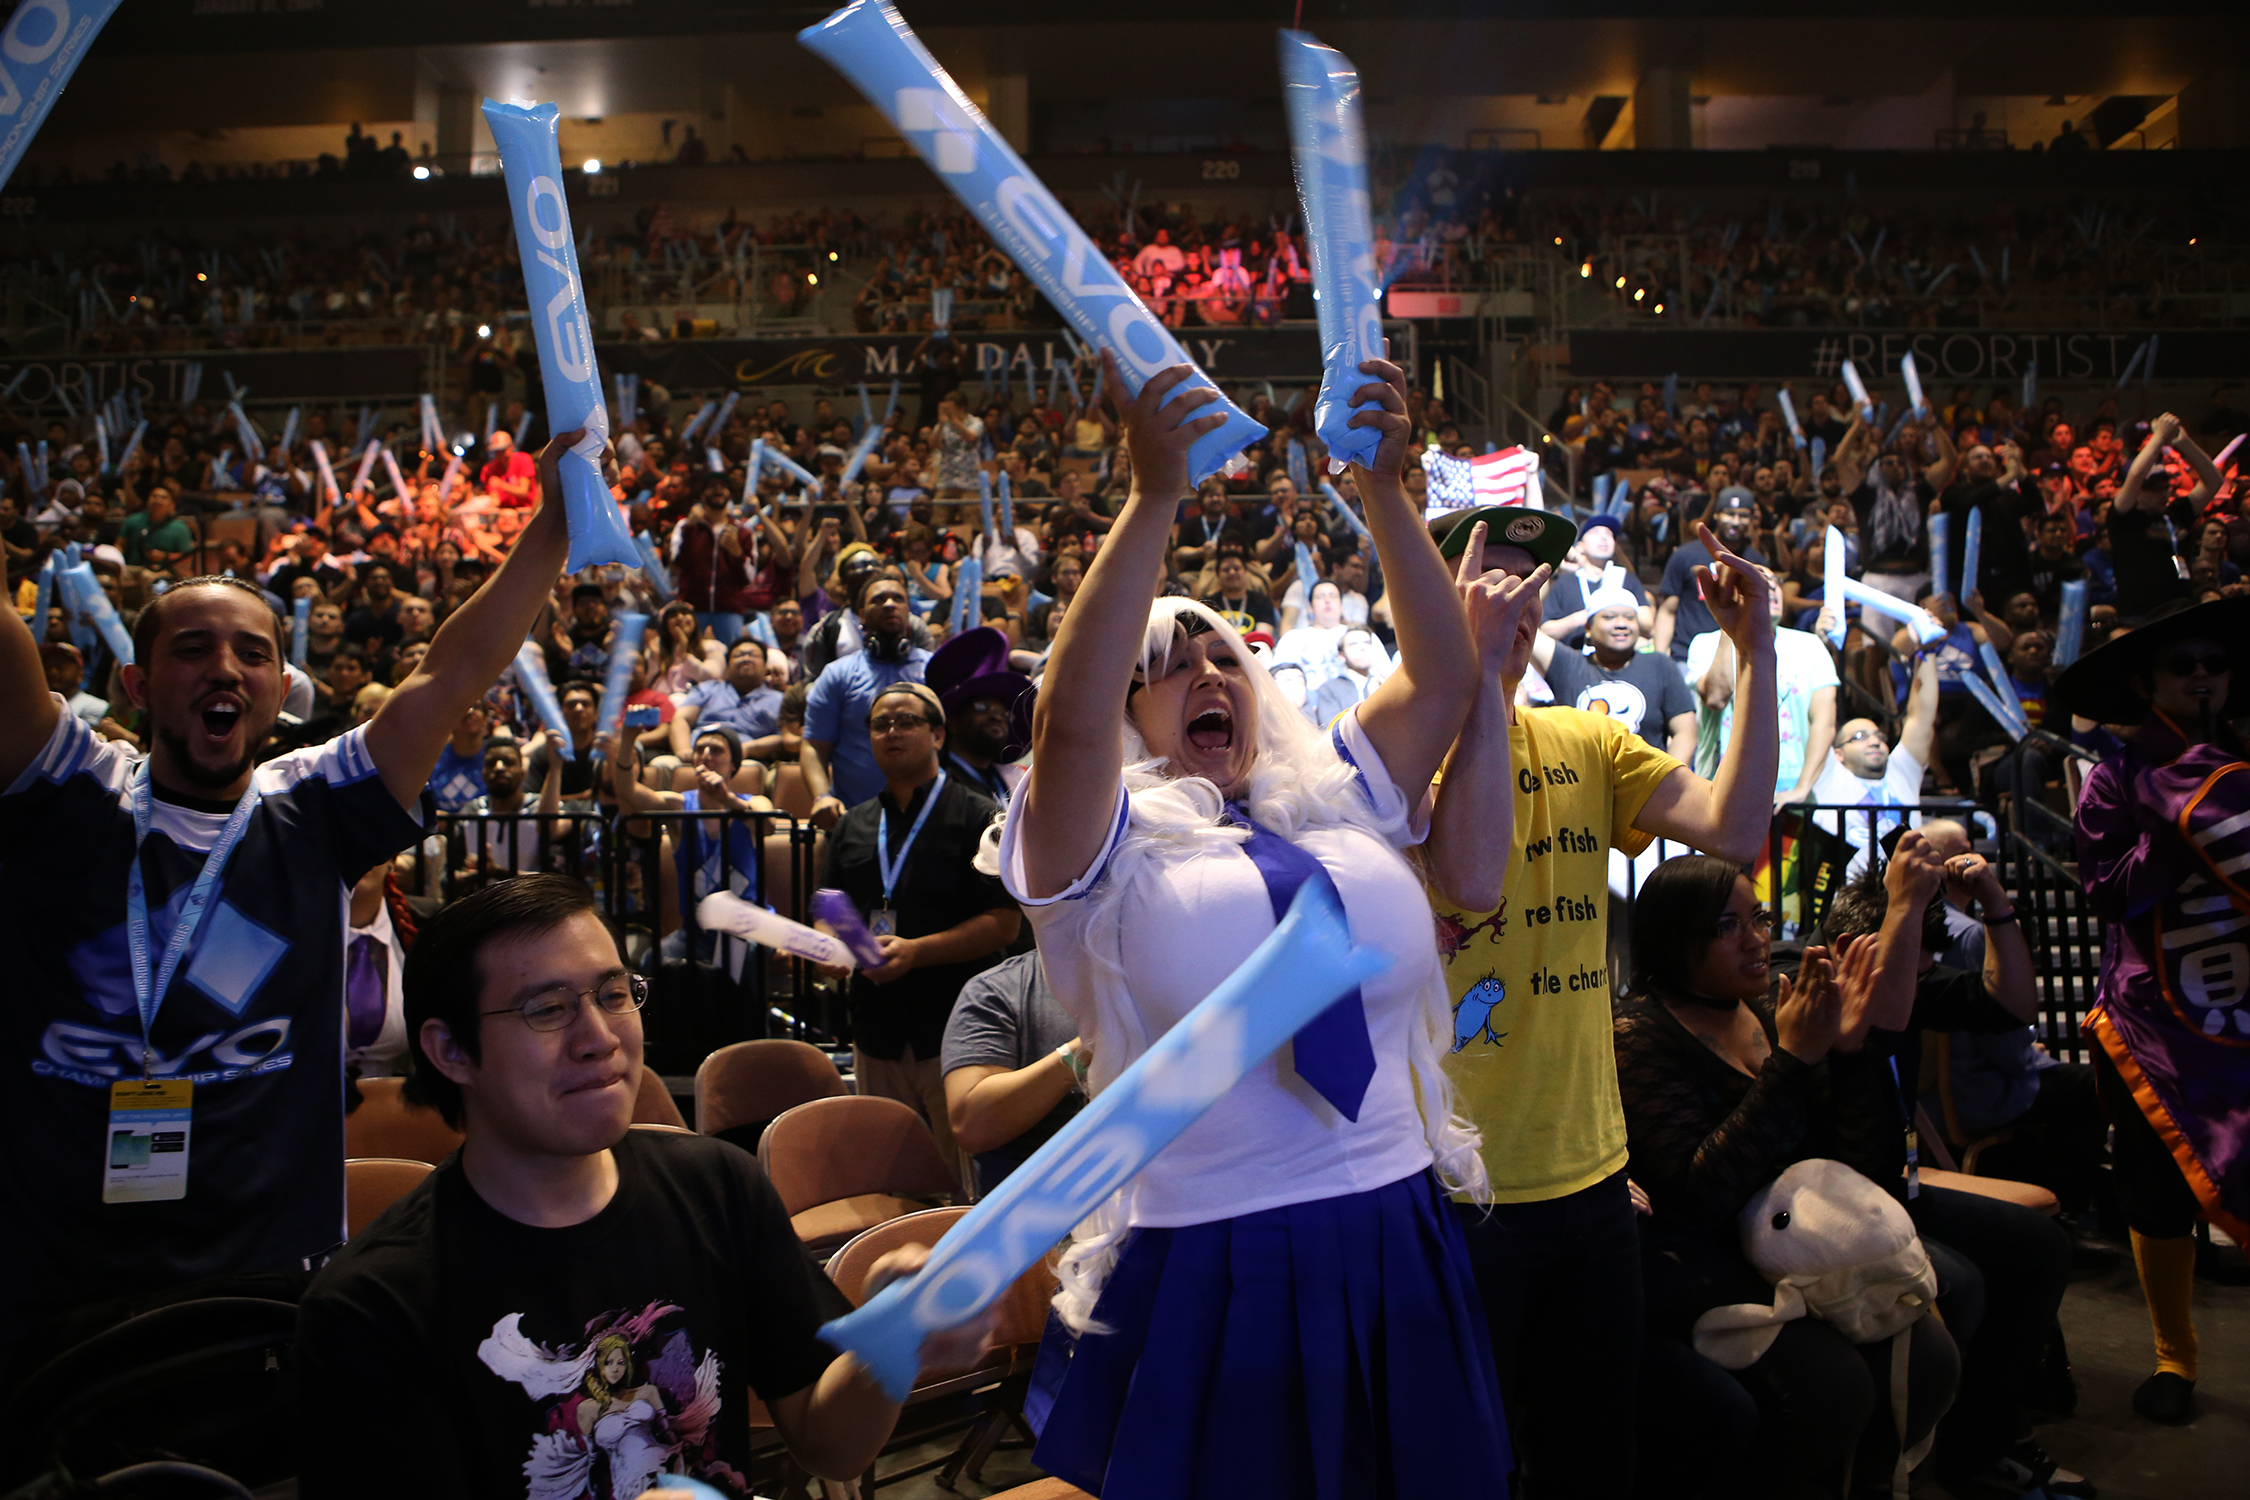 Crowds cheered their favorite players during the Evolution Championship Series. © Gail Fisher for ESPN